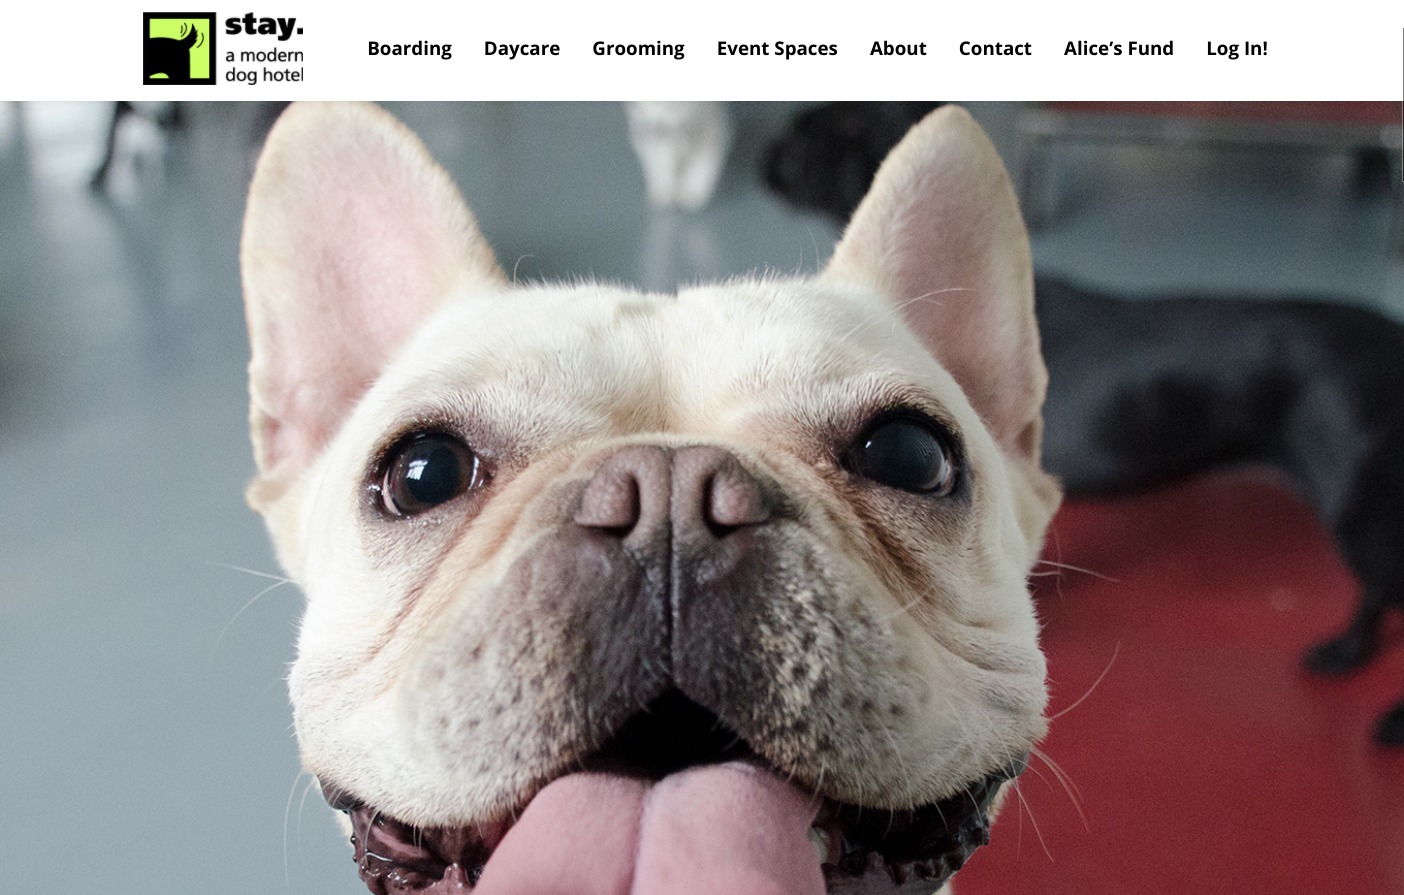 Stay. A Modern Dog Hotel Homepage